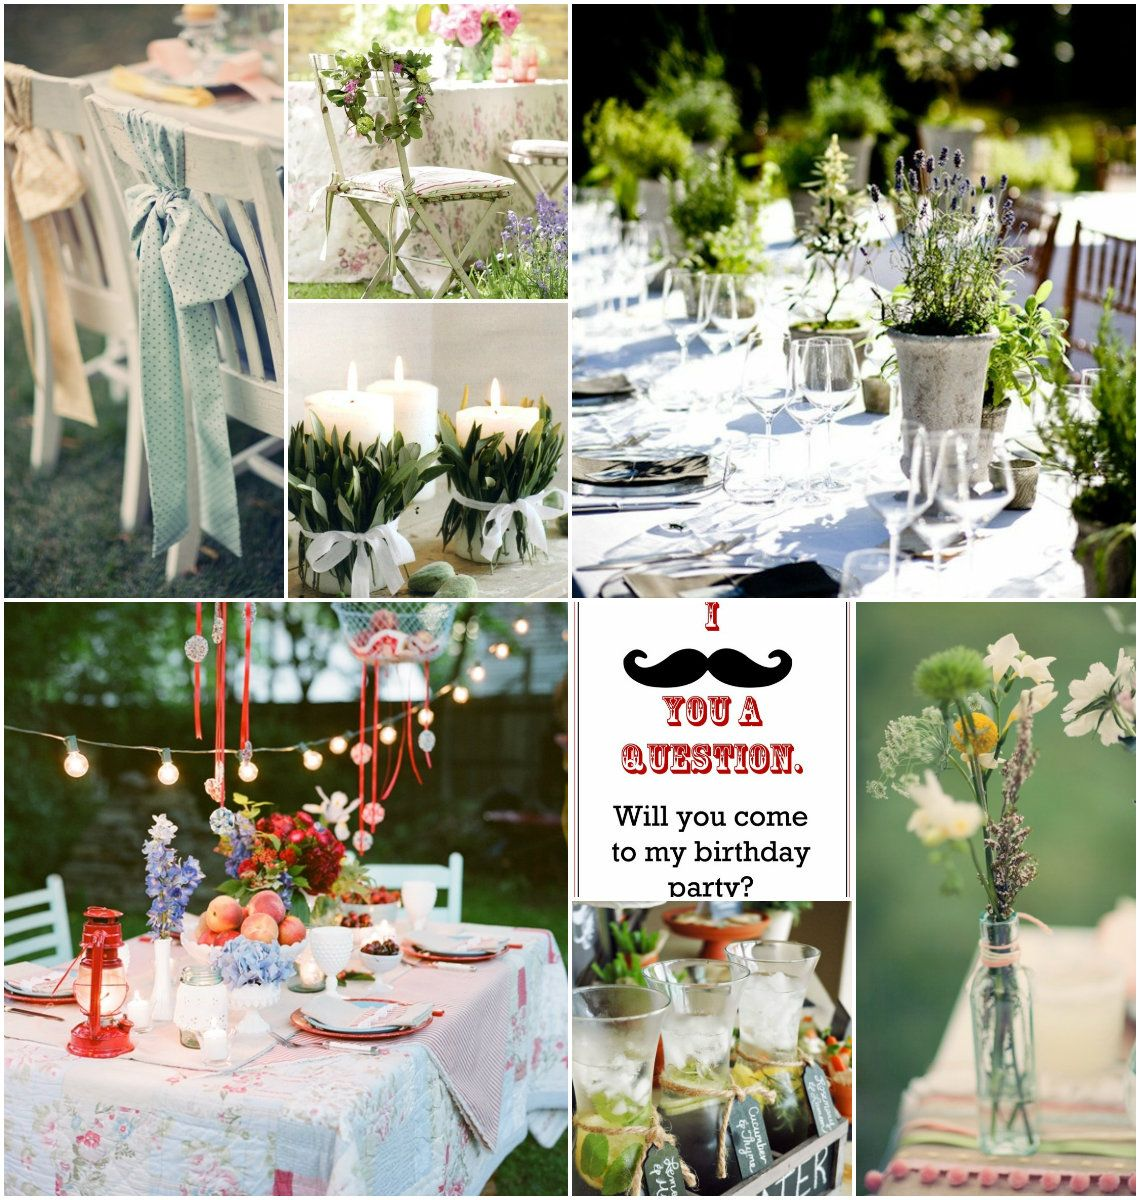 Dinner Birthday Party Ideas Part - 45: Village Garden Theme Fantastic 18th Birthday Party Ideas